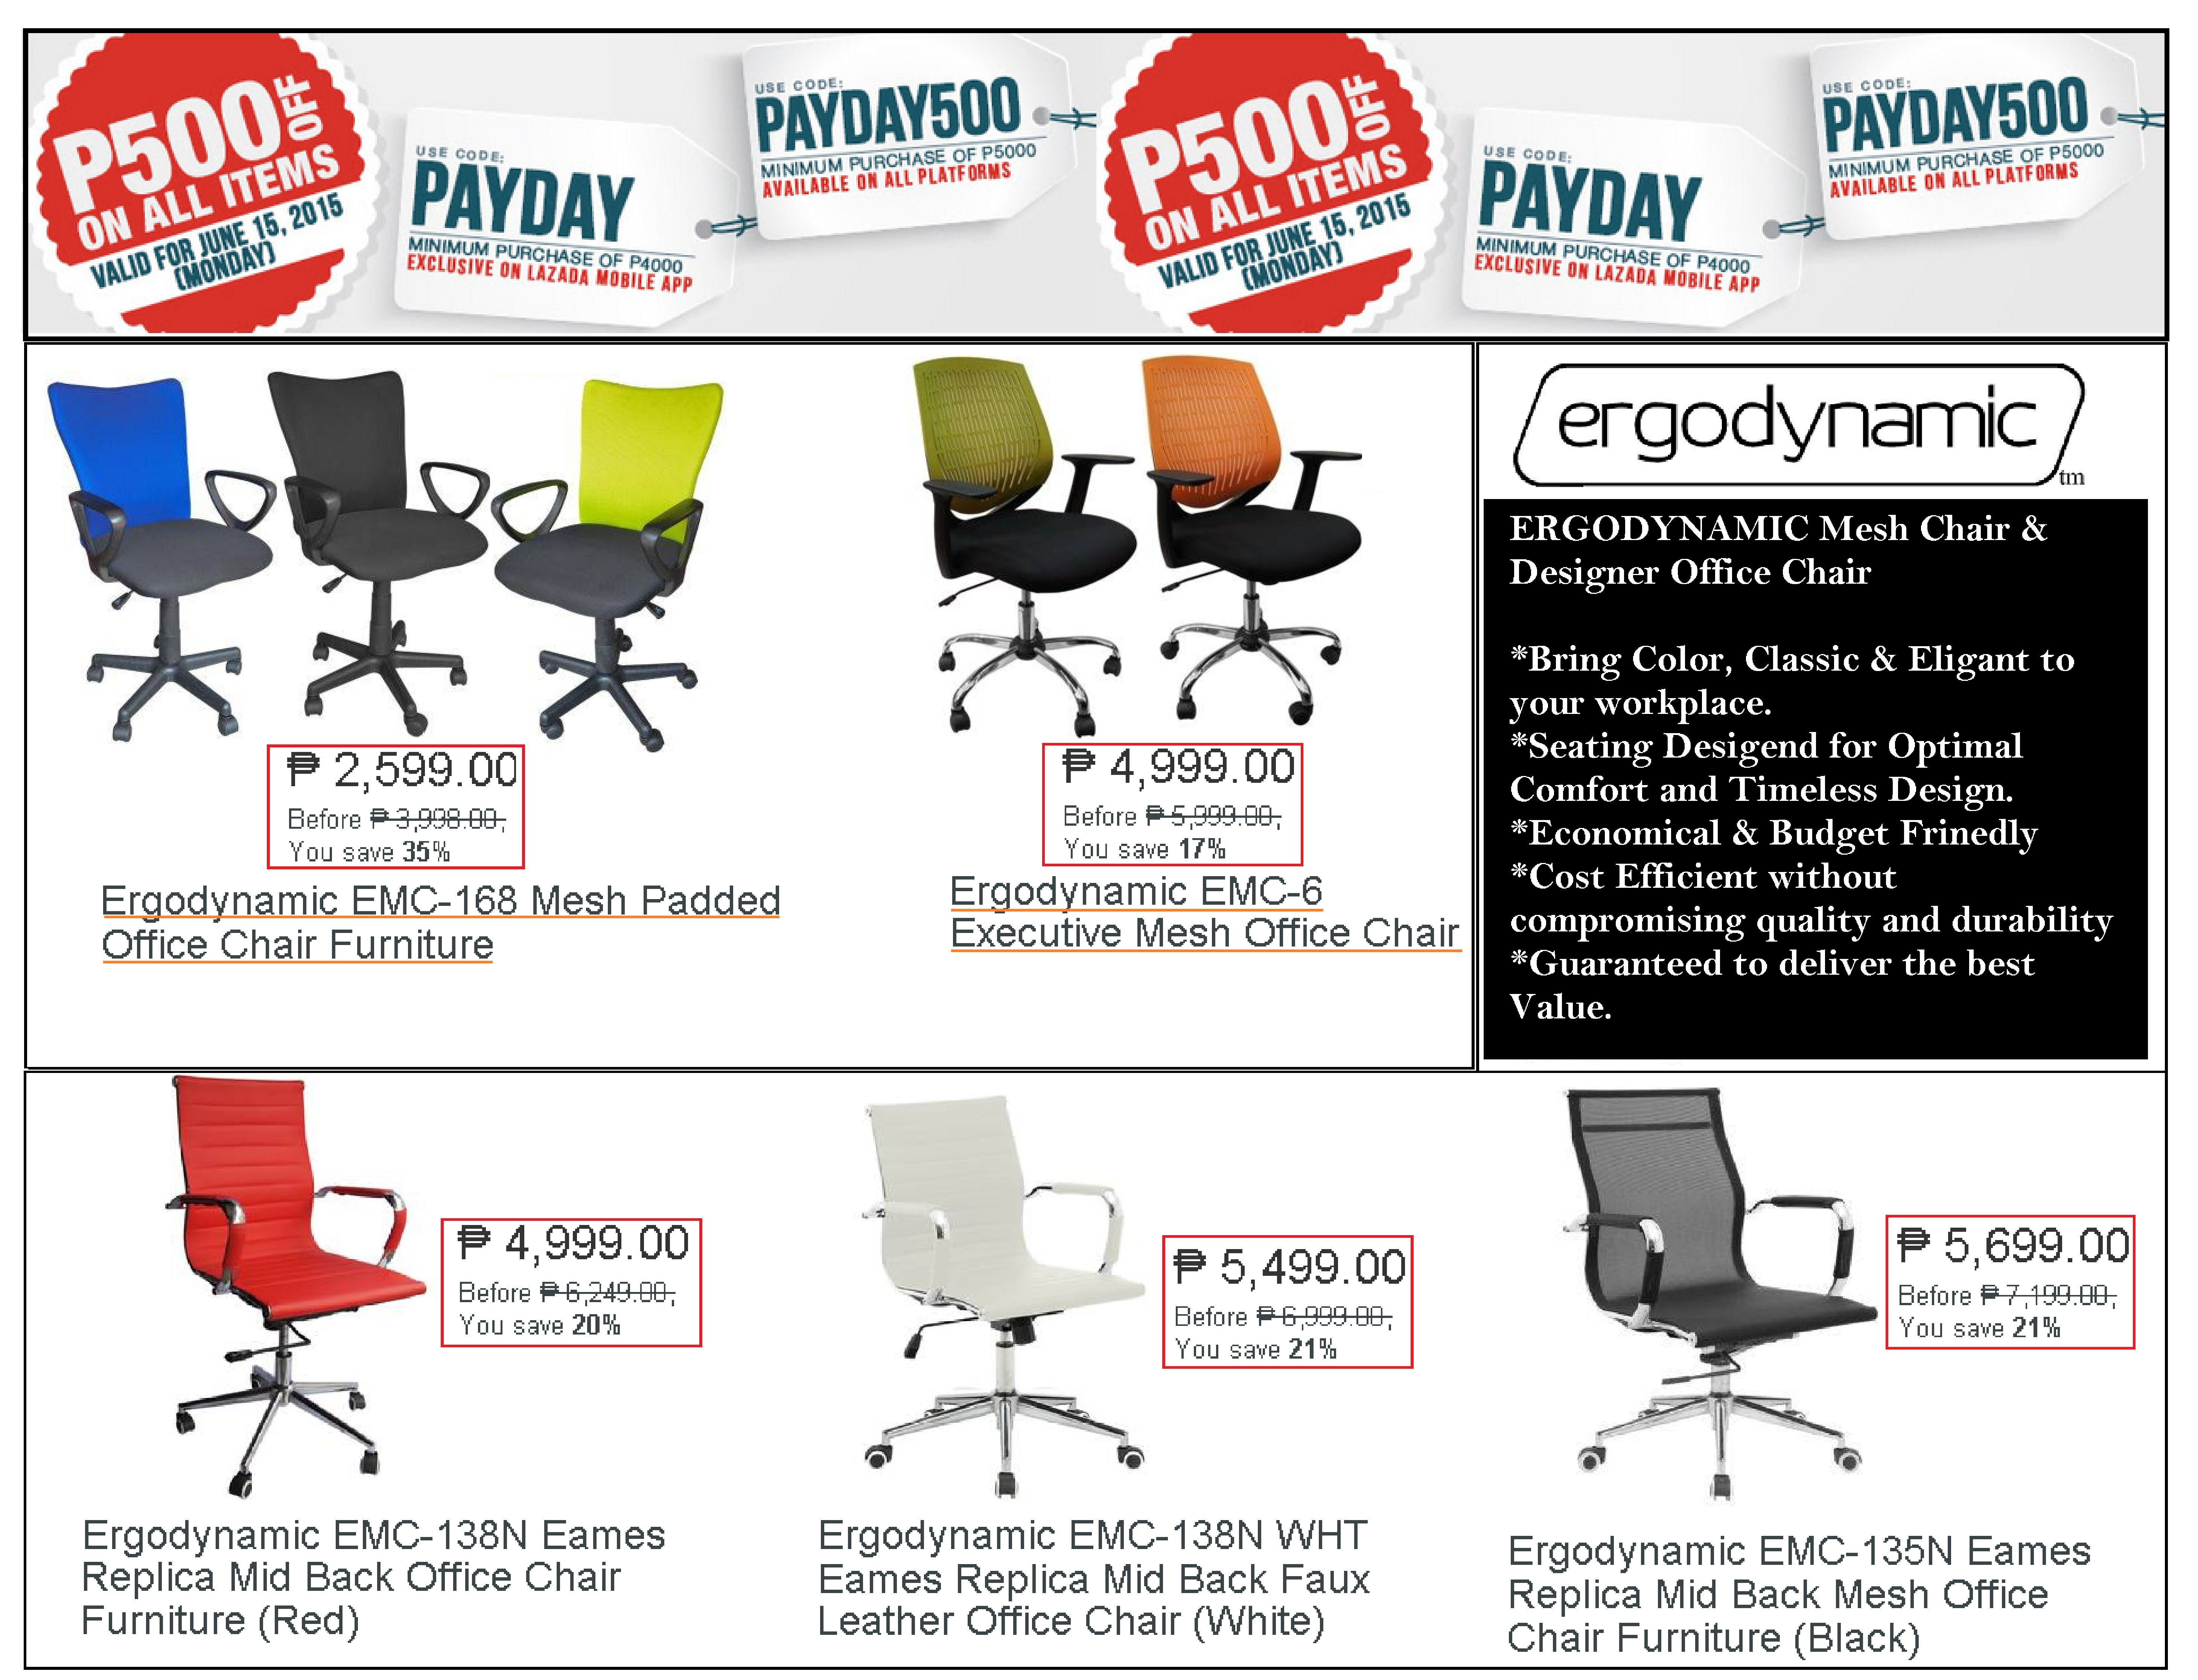 Office Furniture Chair Lazada Payday Save P500 00 Off On Chairs Use Voucher Code Payday500 For Mobile